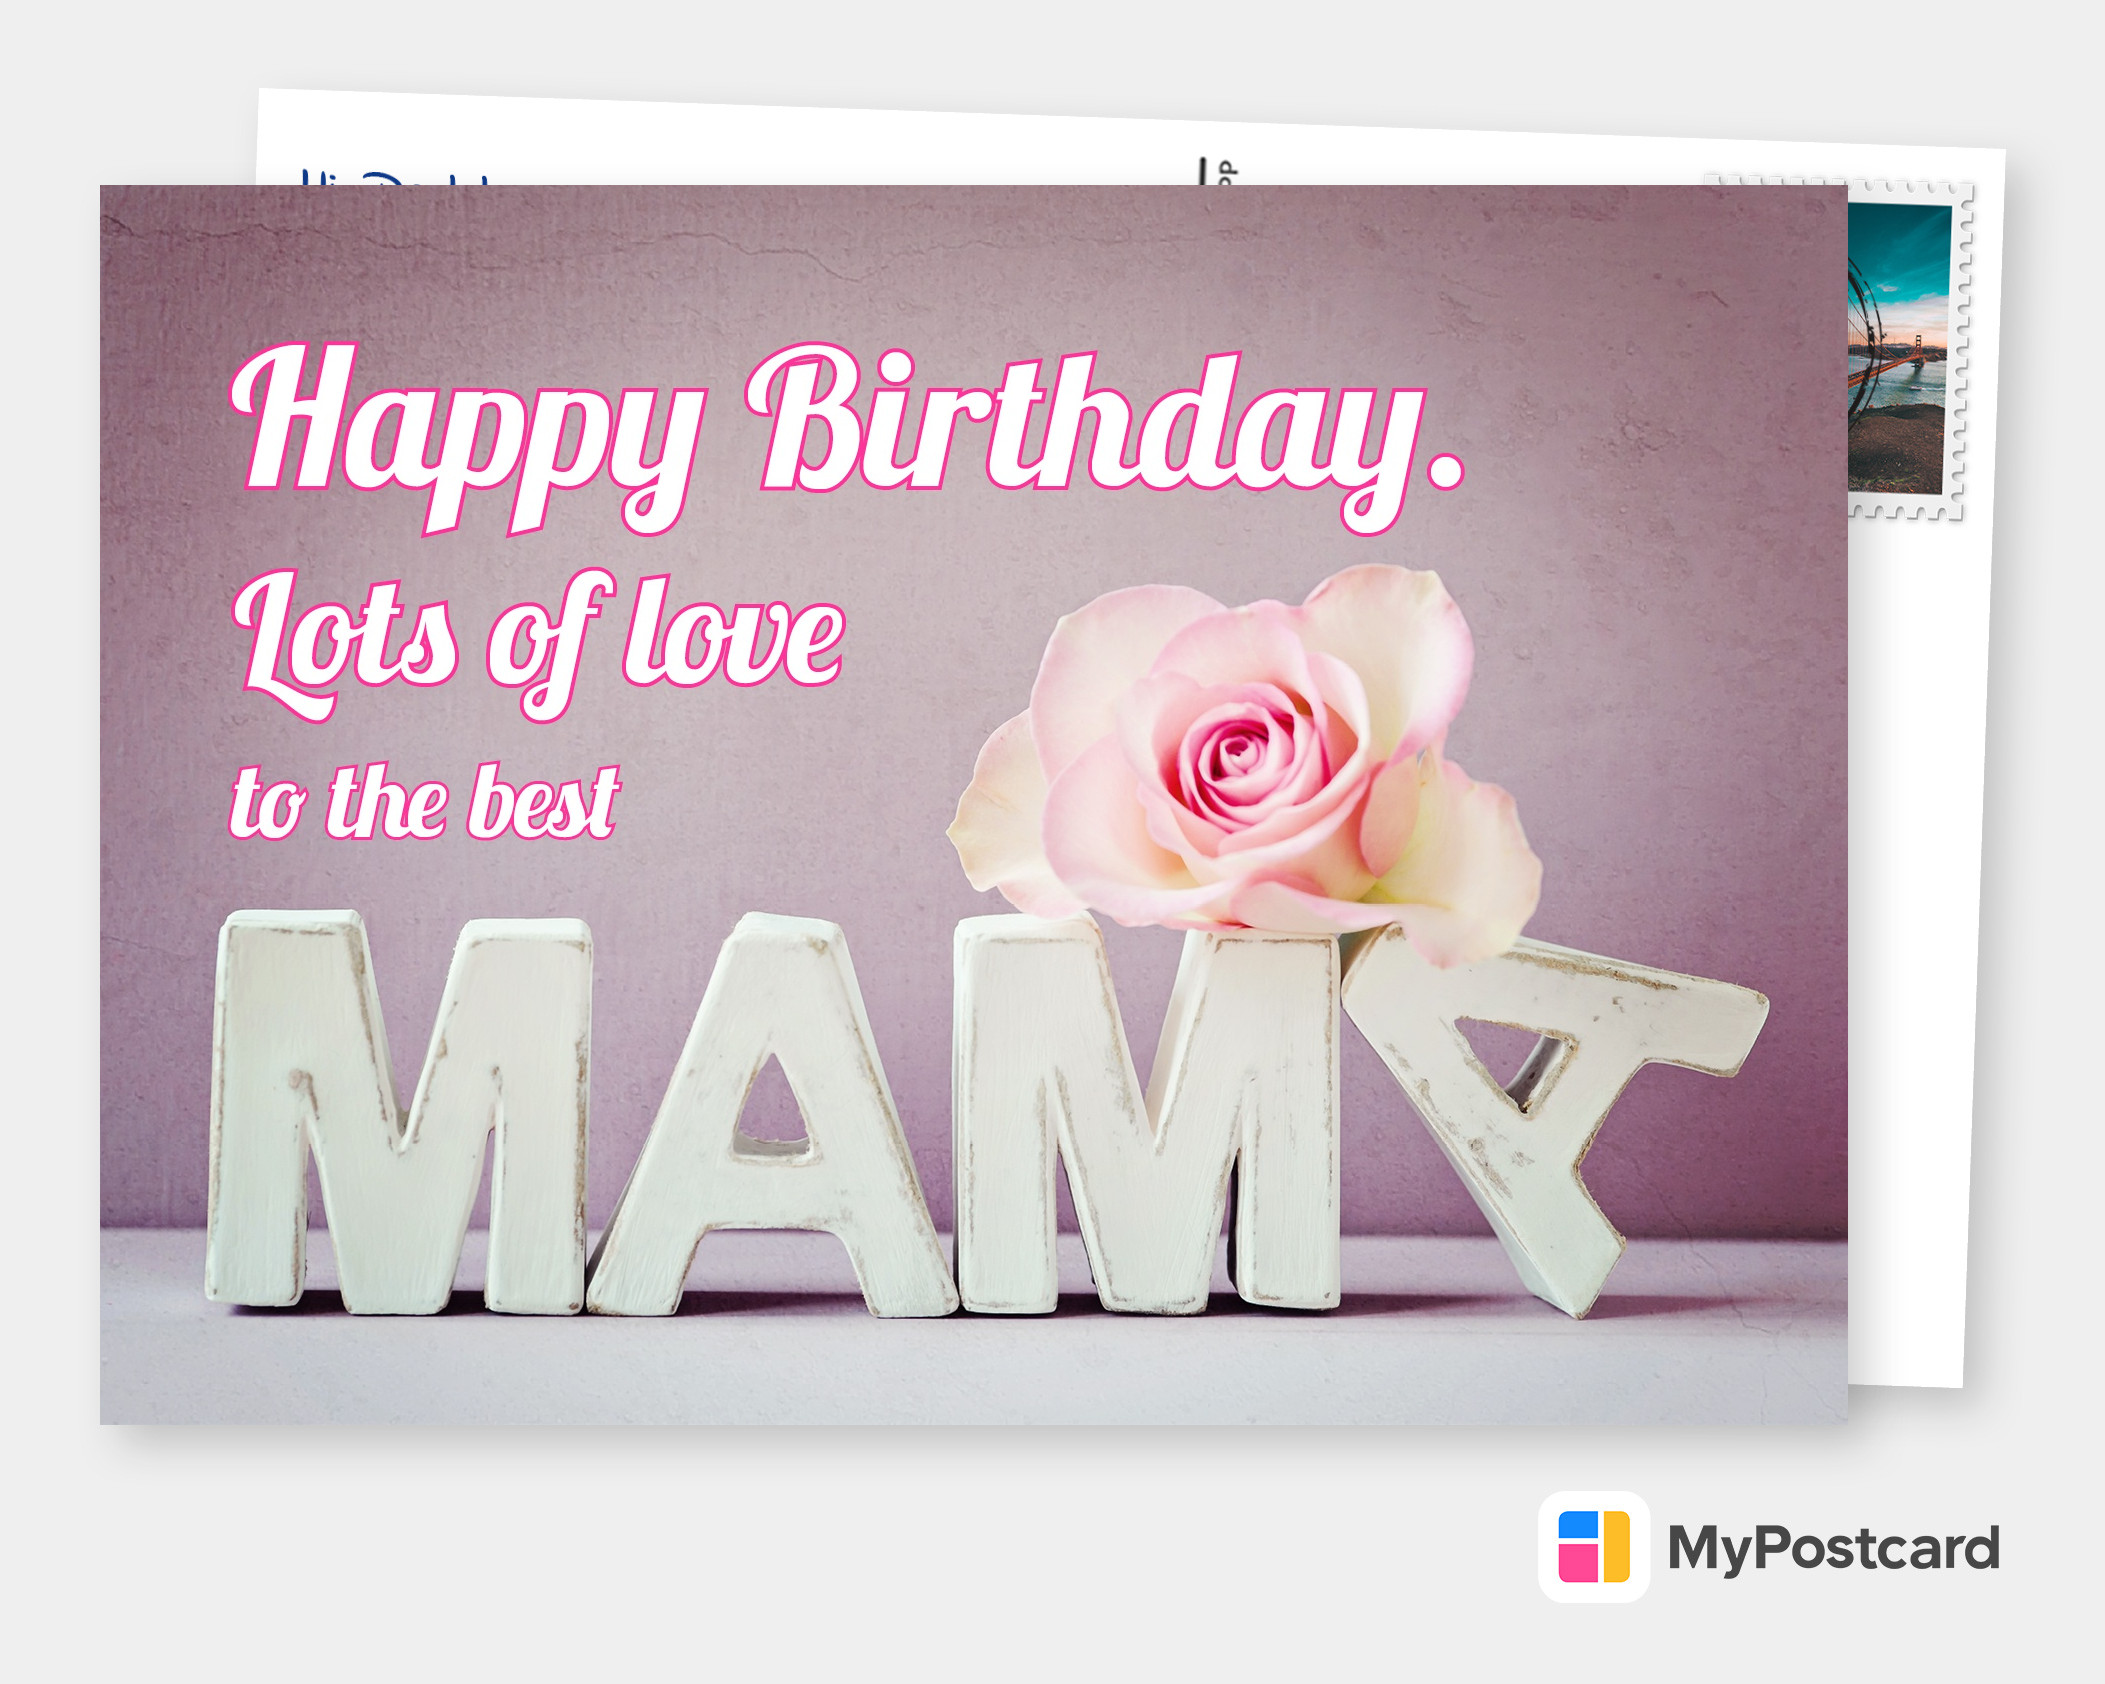 Create Your own Birthday Cards Online  Printed & Mailed For You  International  Free Shipping  Print Your Birthday Cards  Customized  Photo Cards.